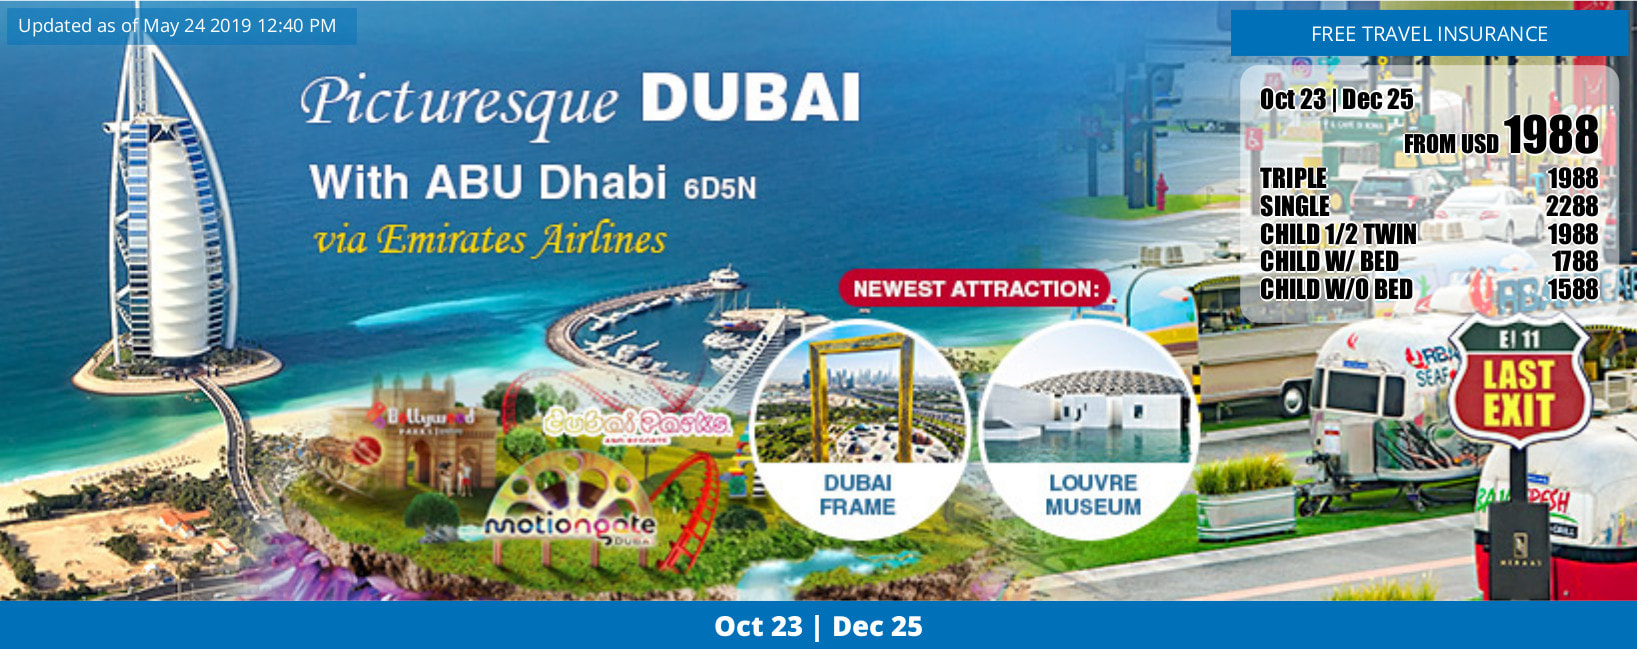 Dubai 6 days tour 2019 Dec 25 flyer, click for detailed itinerary jpg file